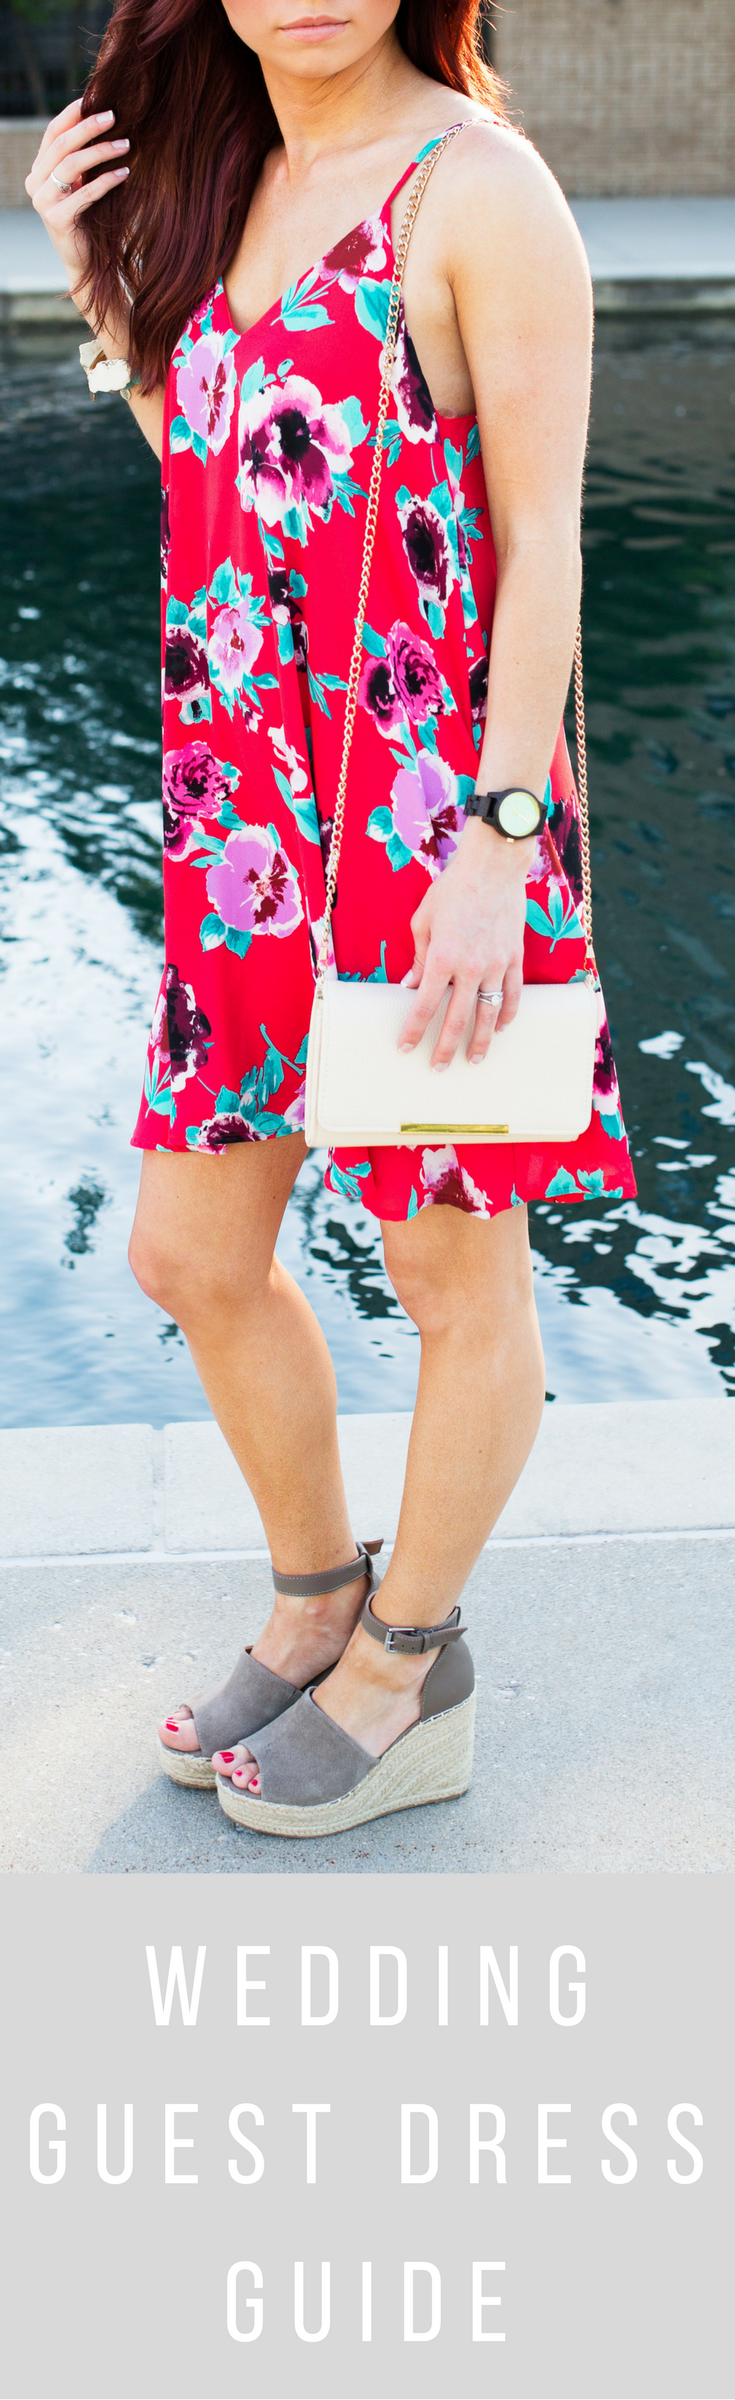 6 Awesome Tips For The Perfect Wedding Guest Outfit by Indianapolis fashion blogger Trendy in Indy